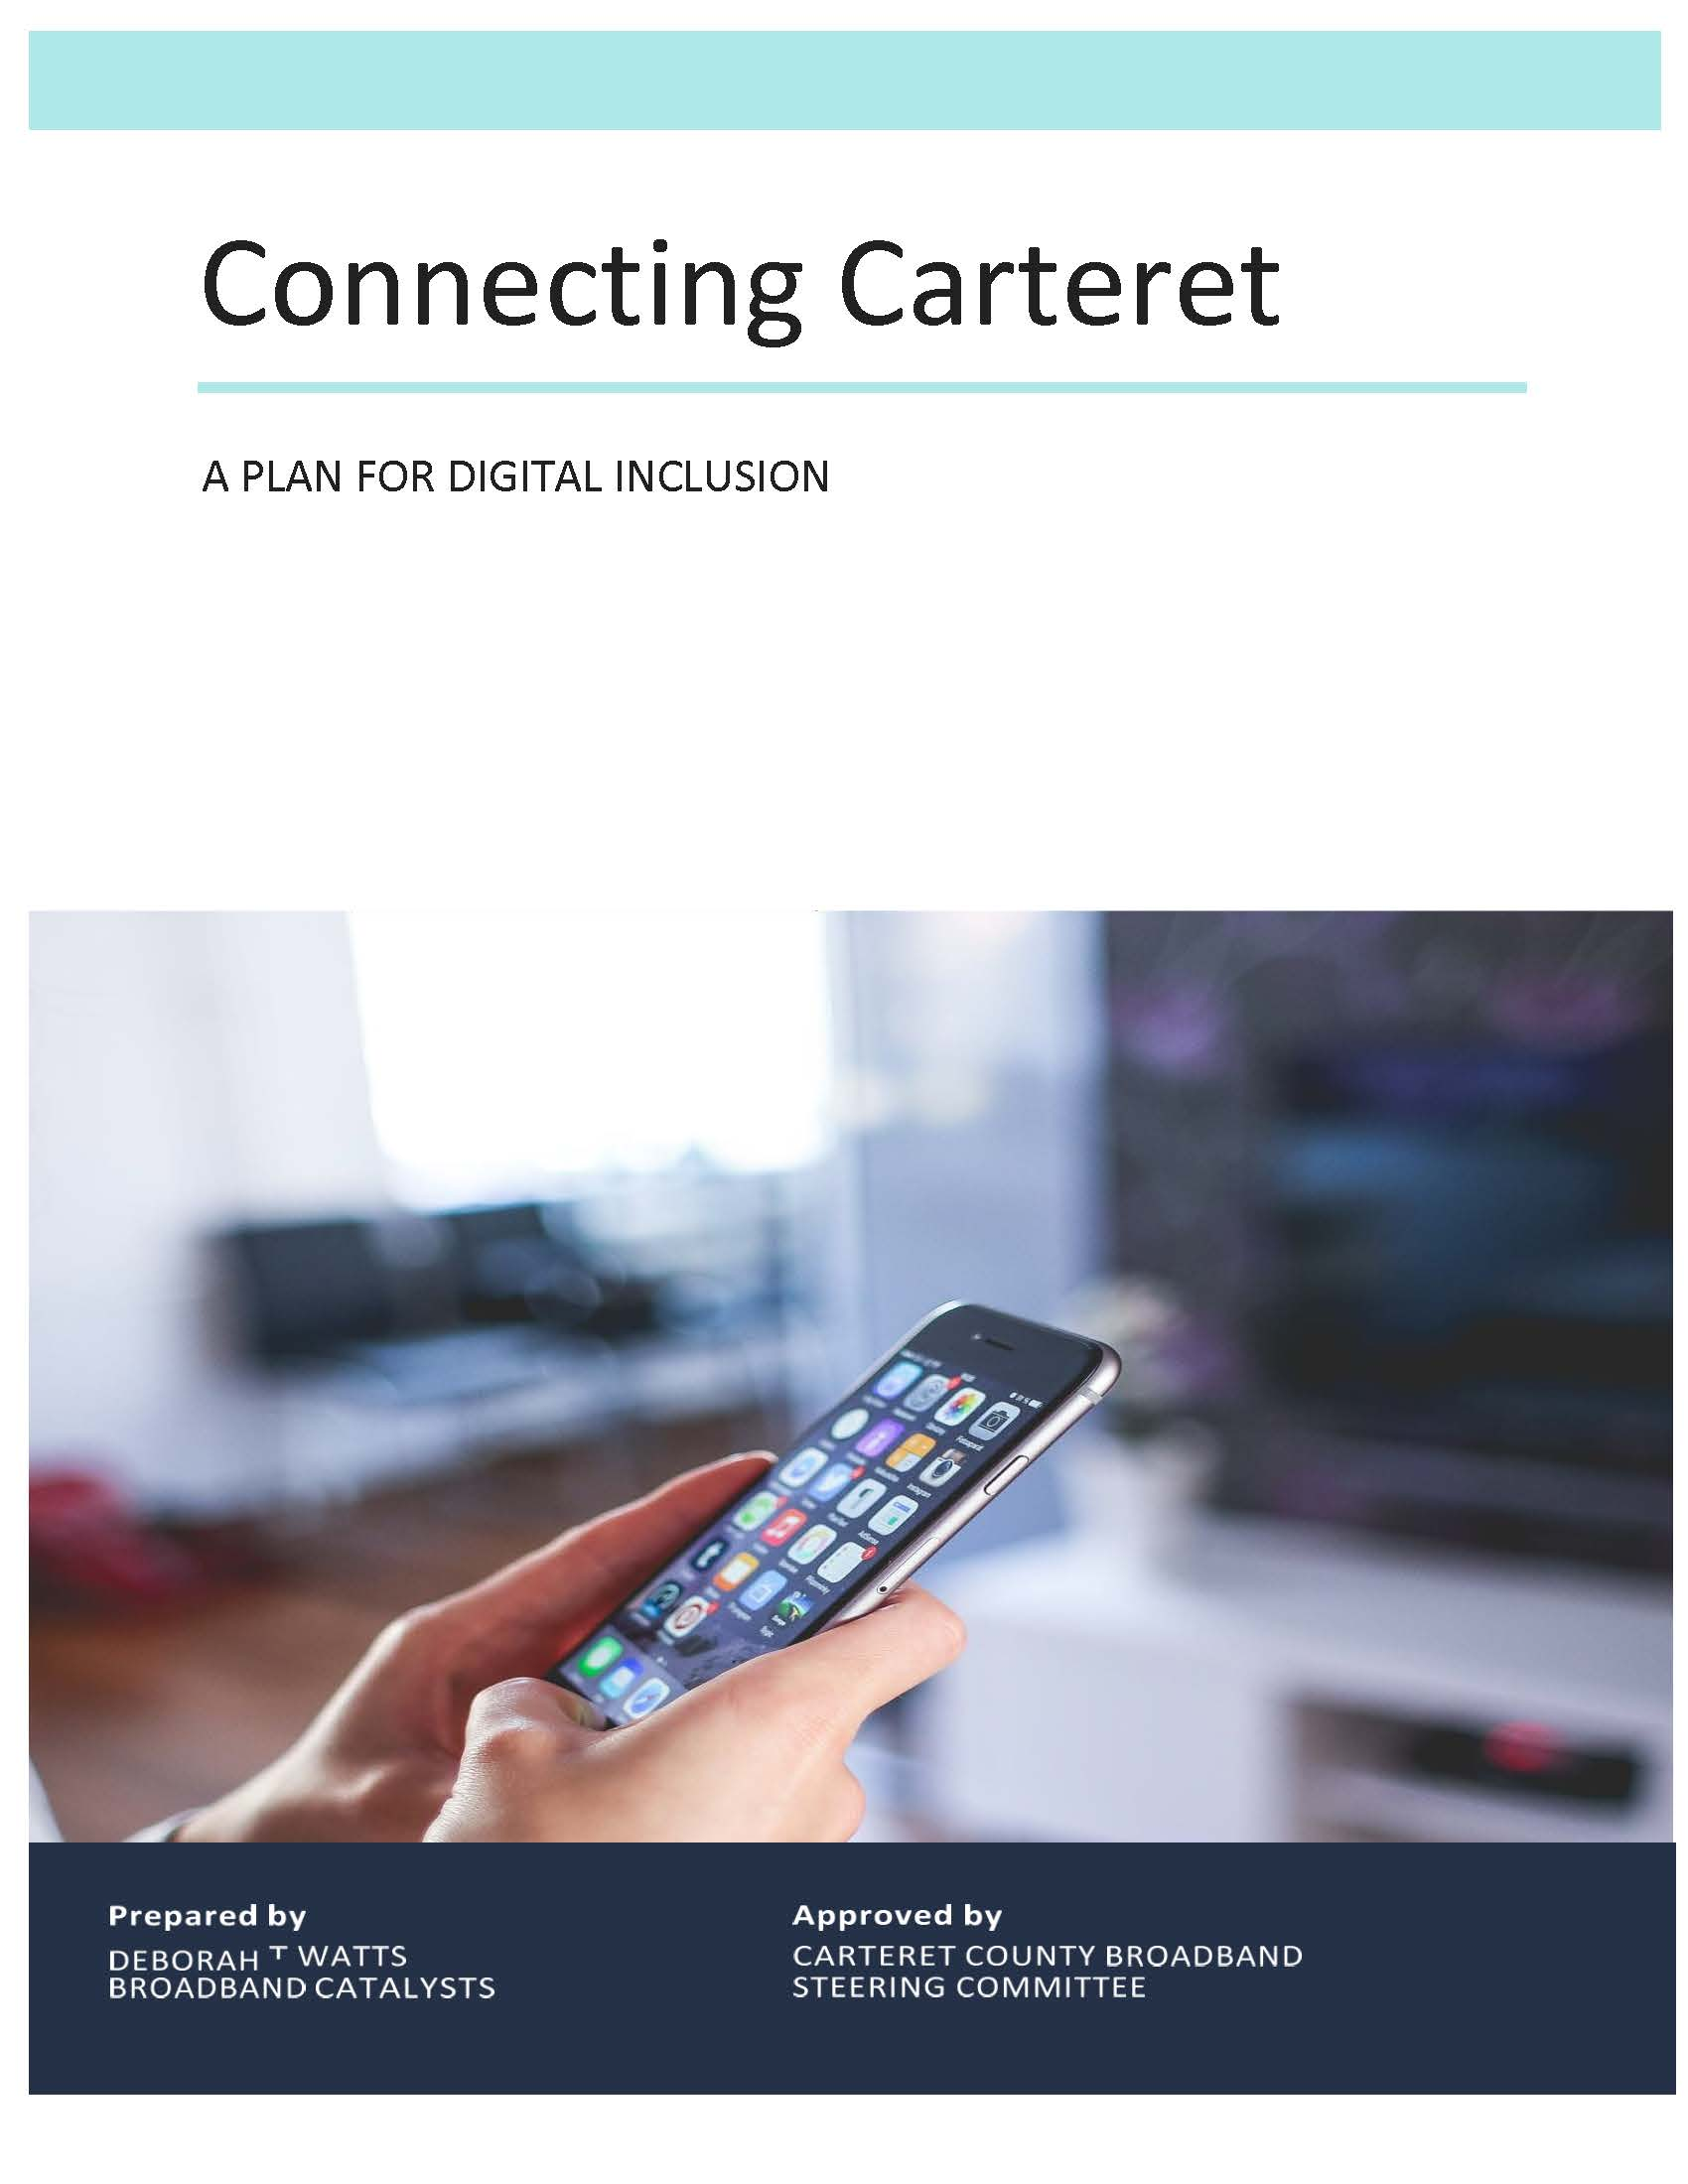 Final ED Carteret County Digital Inclusion Plan (02-04-21) PDF_Page_01